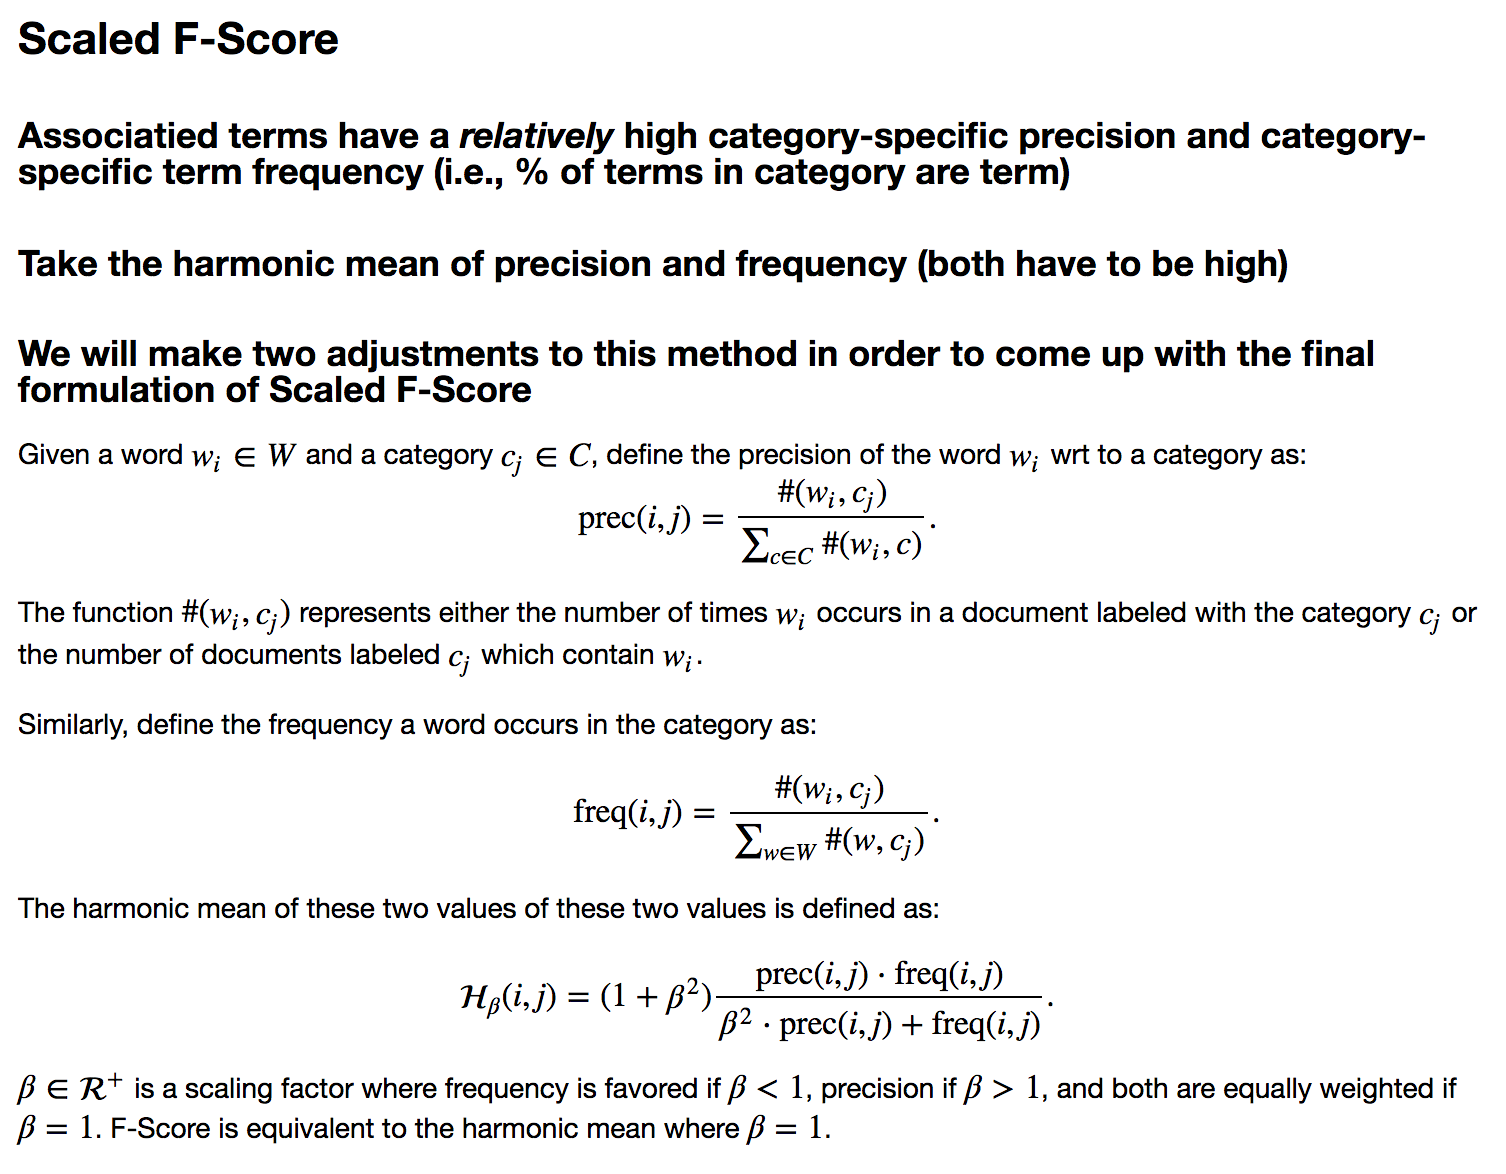 Scaled F-Score Explanation 1